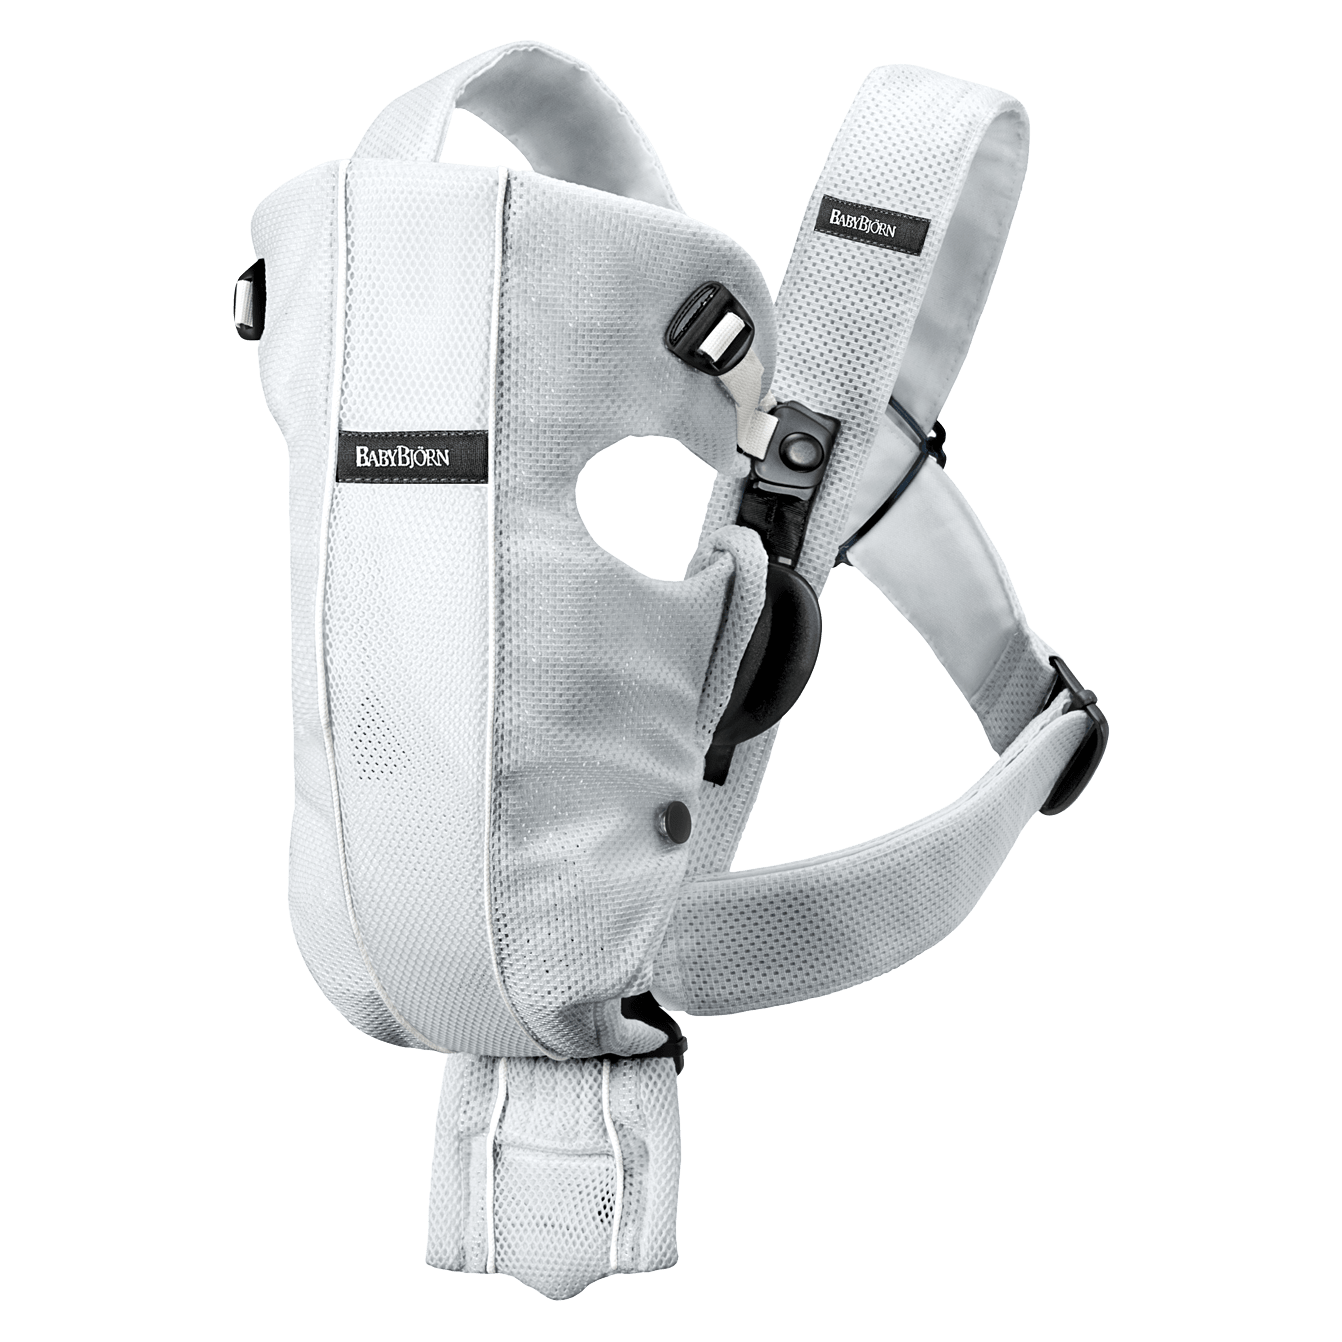 BABYBJÖRN Baby Carrier Original in Silver Mesh, perfect for newborn thanks to the built-in insert.